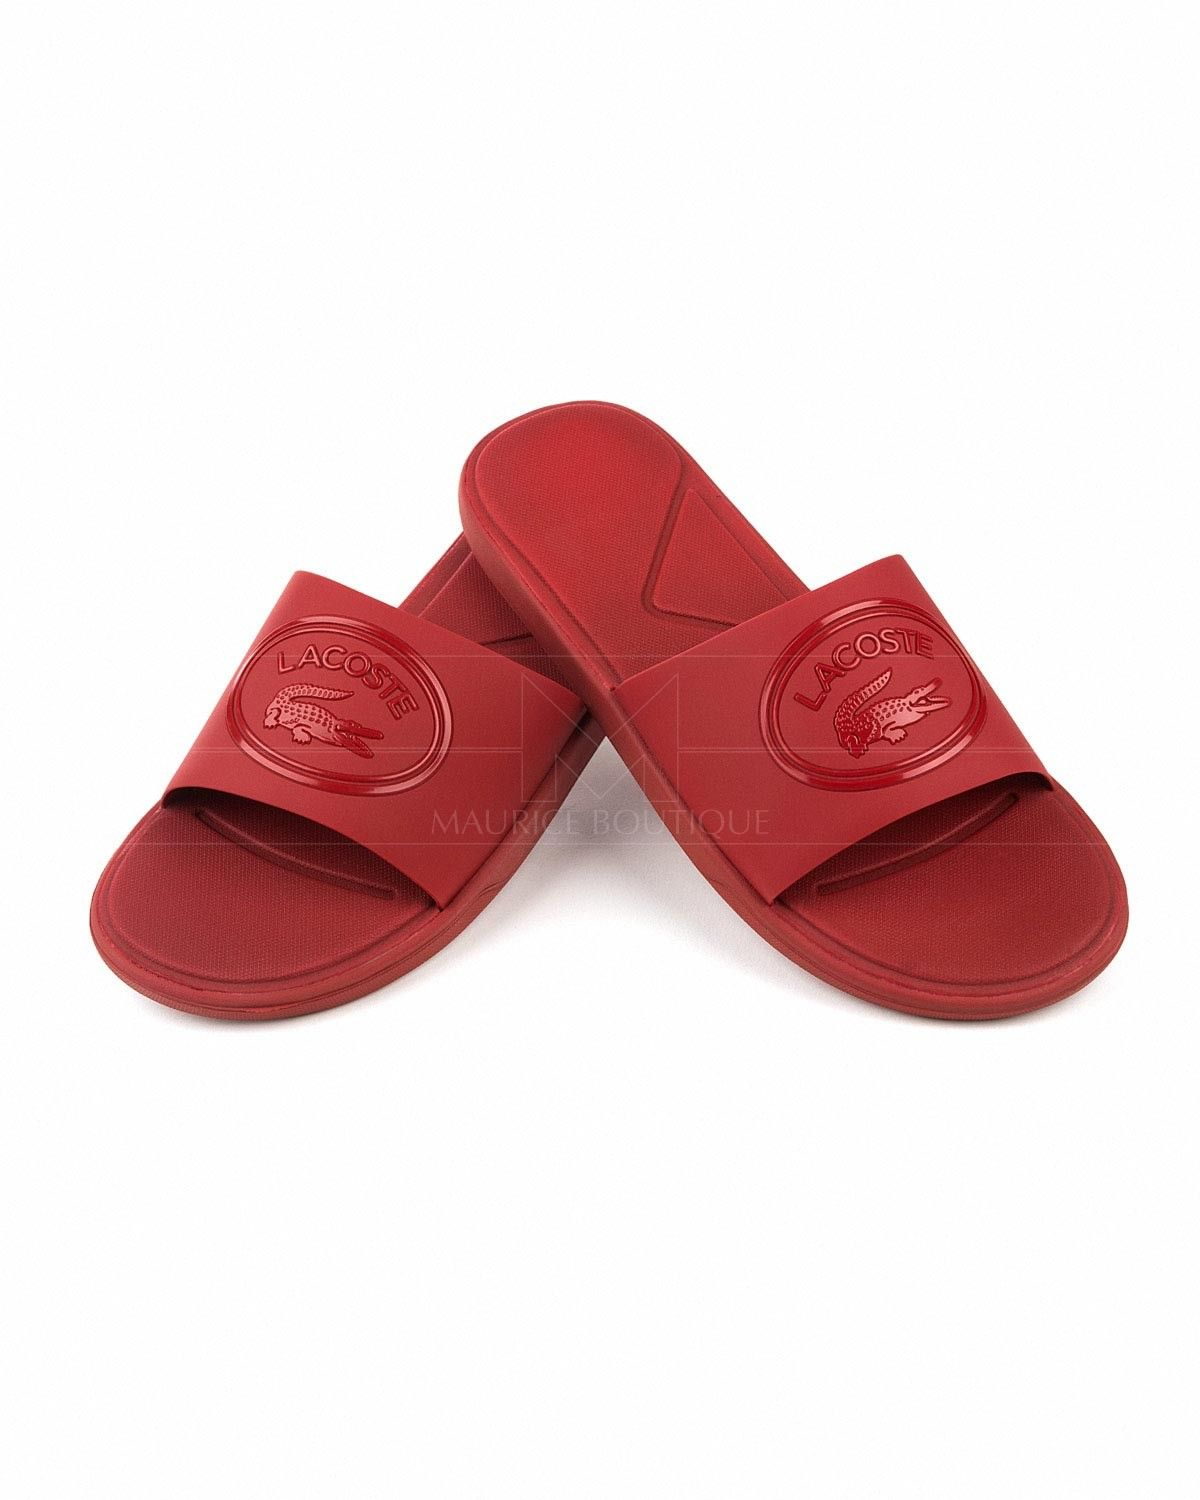 25821d84272cf0 Chanclas Lacoste L30 Slide - Rojas in 2019